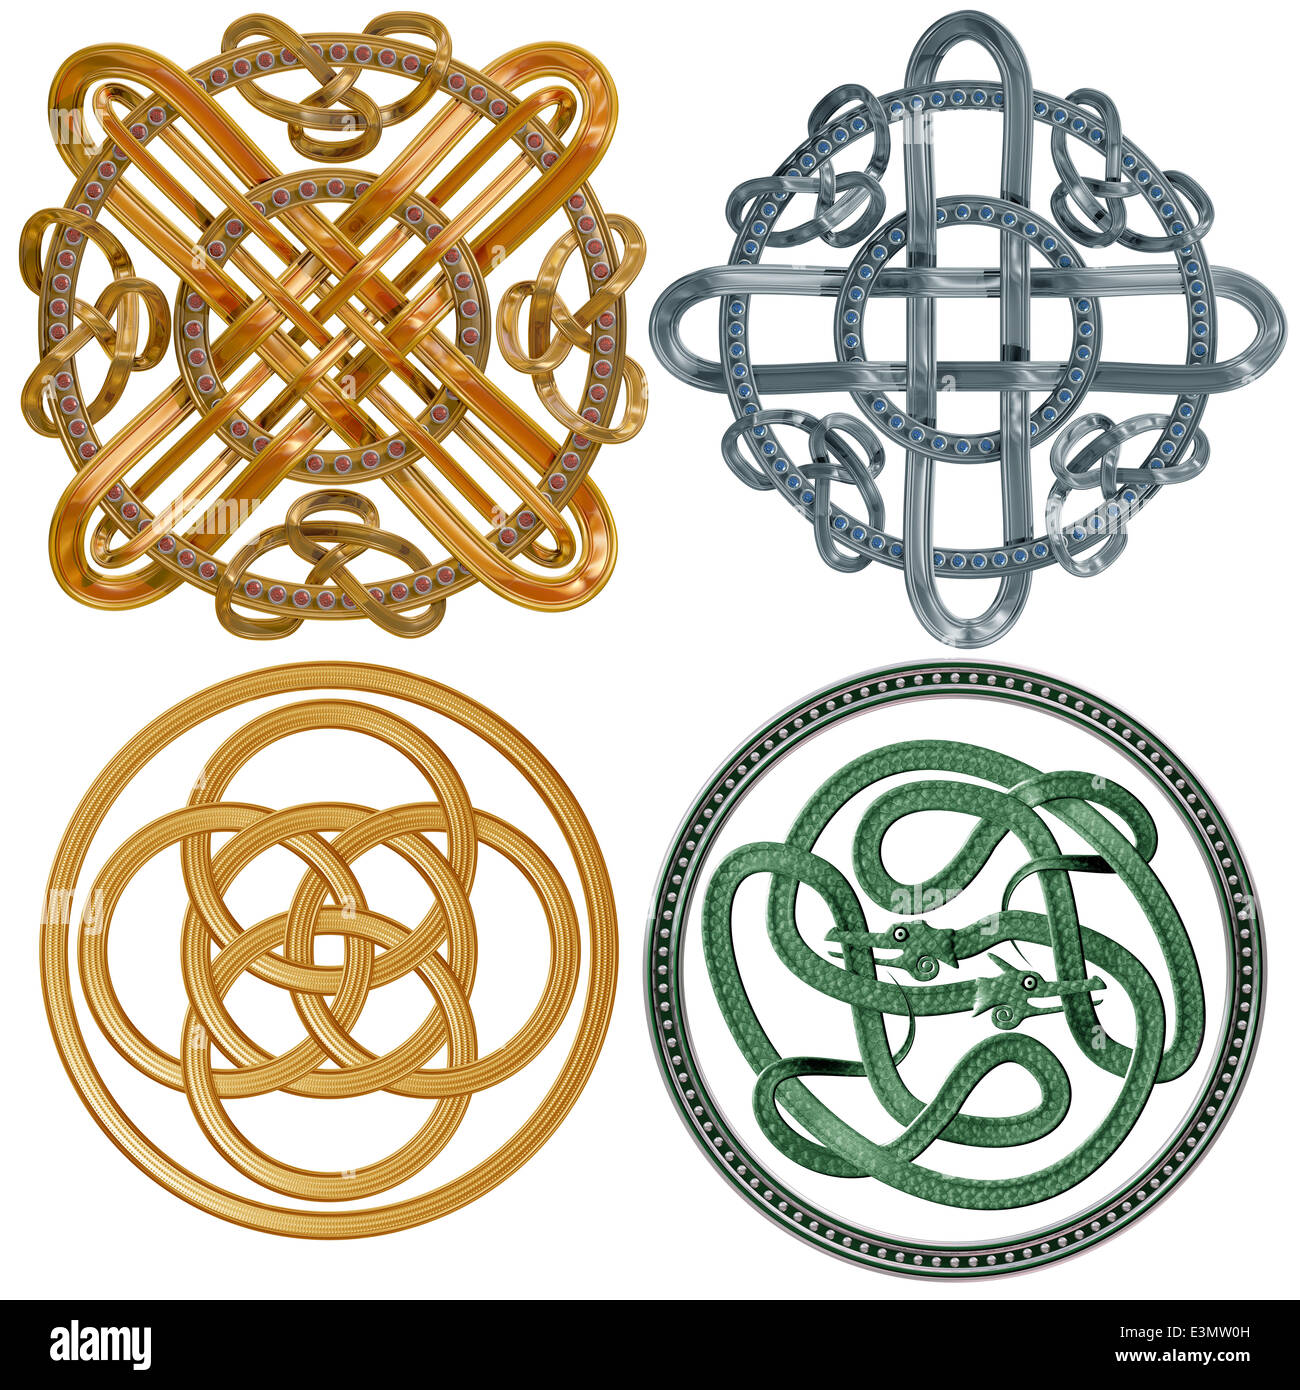 A collection of intricate Celtic Knots based on a circle - Stock Image